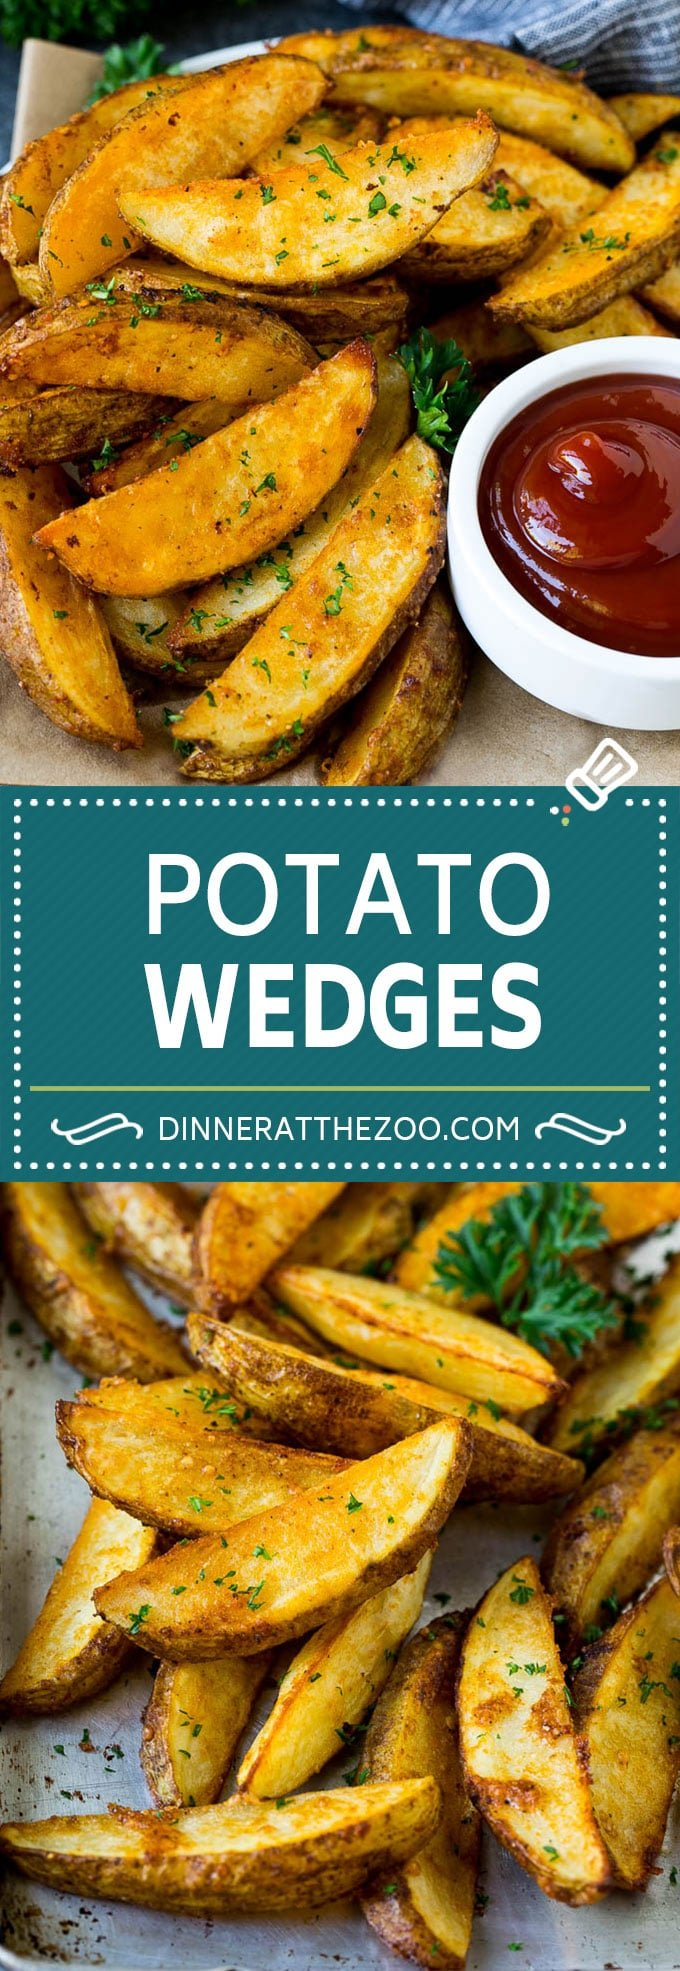 Baked Potato Wedges Recipe | Baked French Fries #potatoes #fries #sidedish #dinner #dinneratthezoo